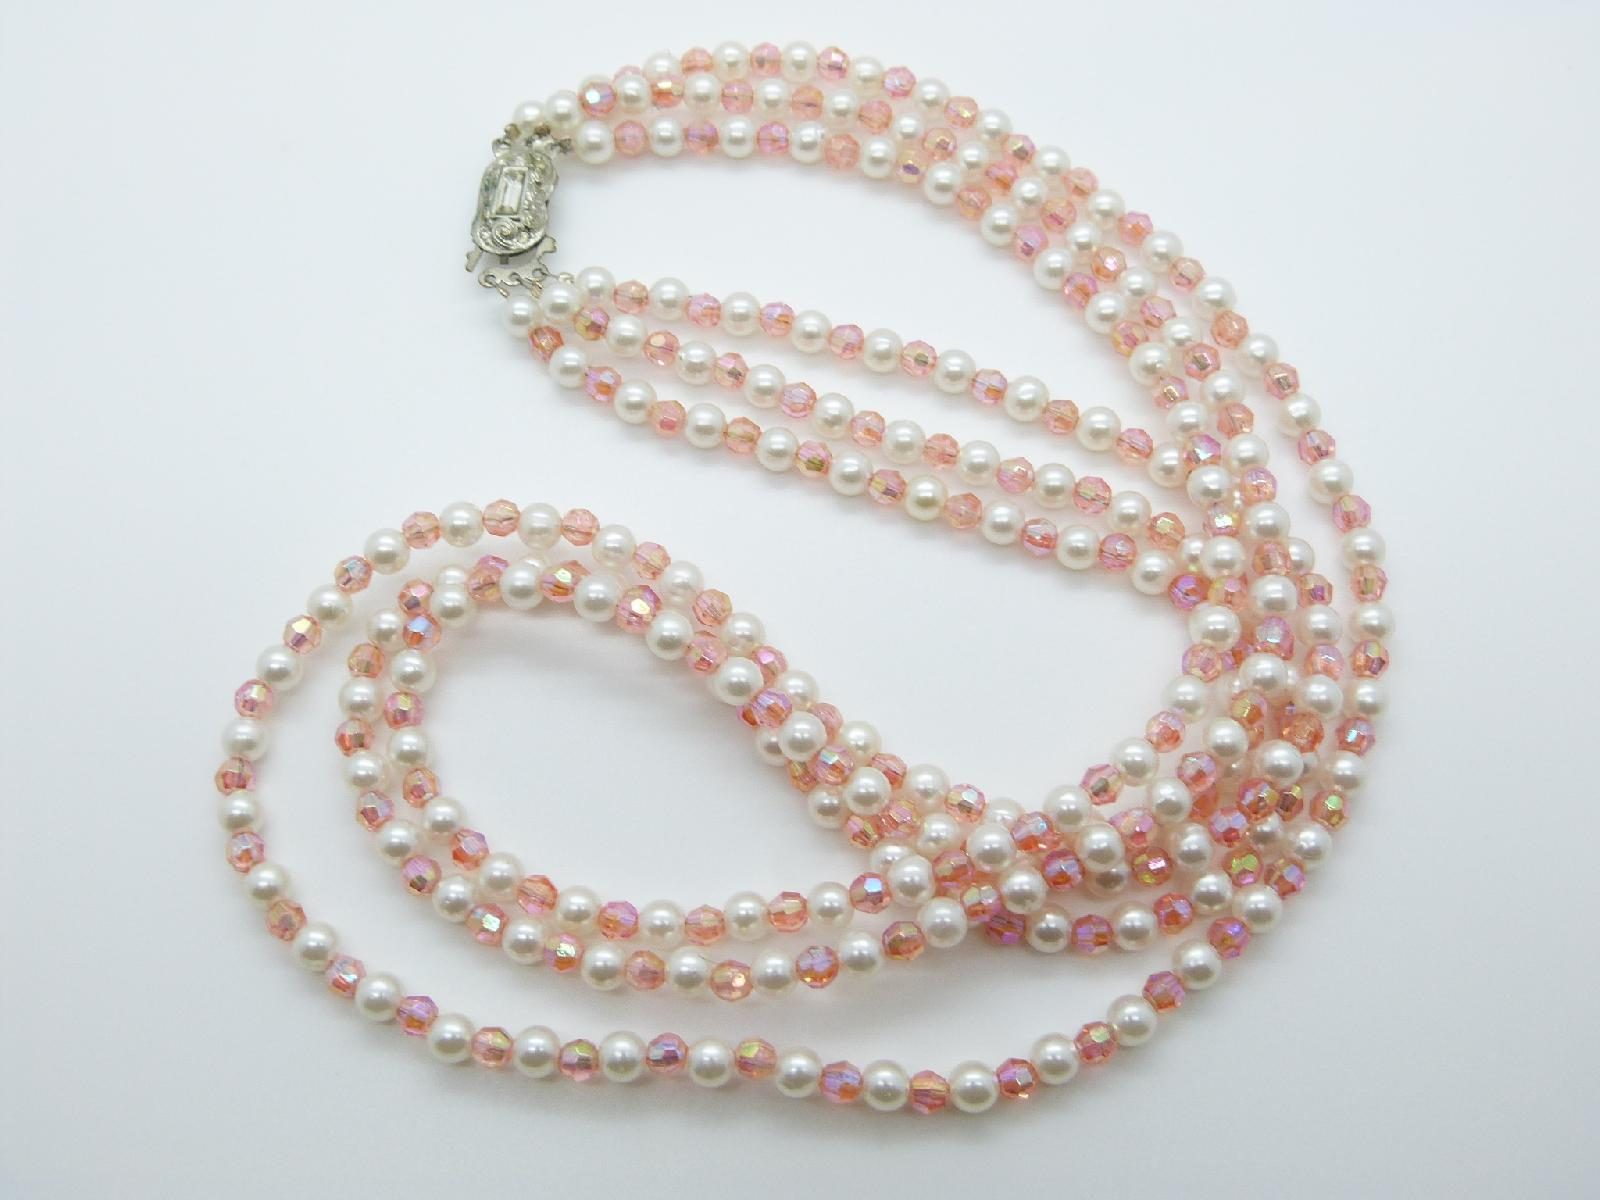 Vintage 50s Three Row Lucite Pink Bead and Plastic Pearl Necklace 66cms